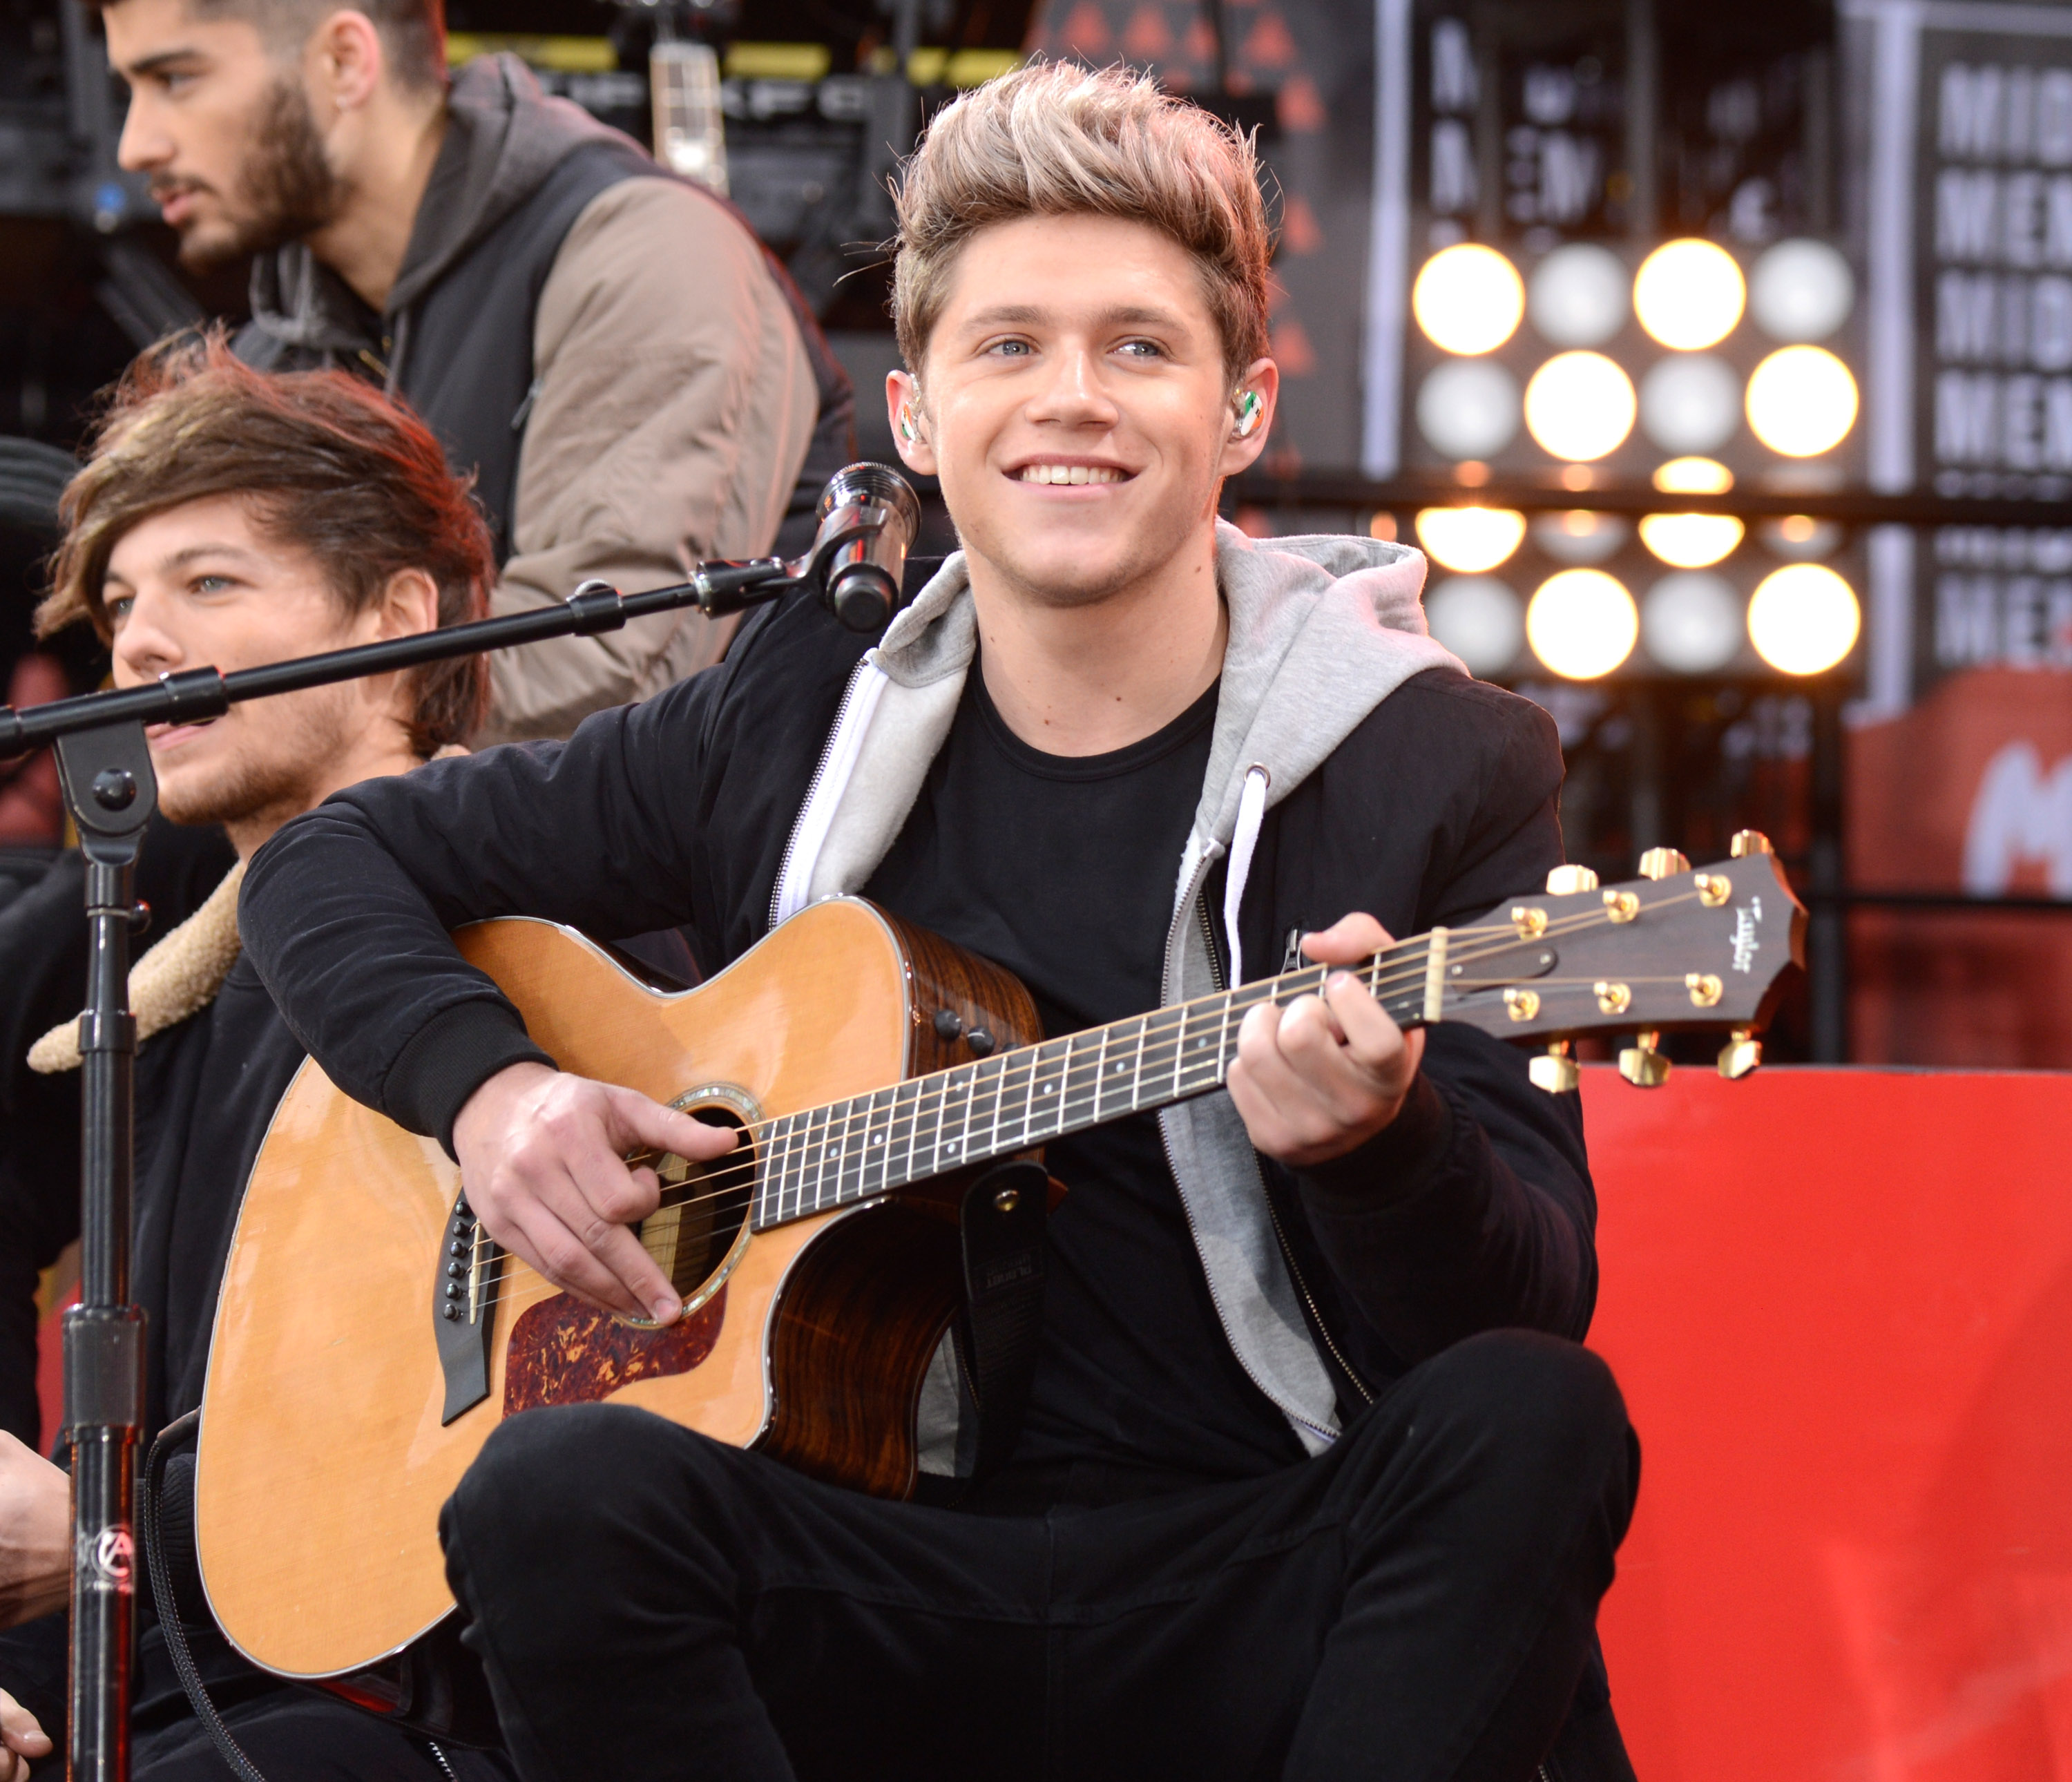 Niall Horan signs solo album deal but snubs Simon Cowell's record label